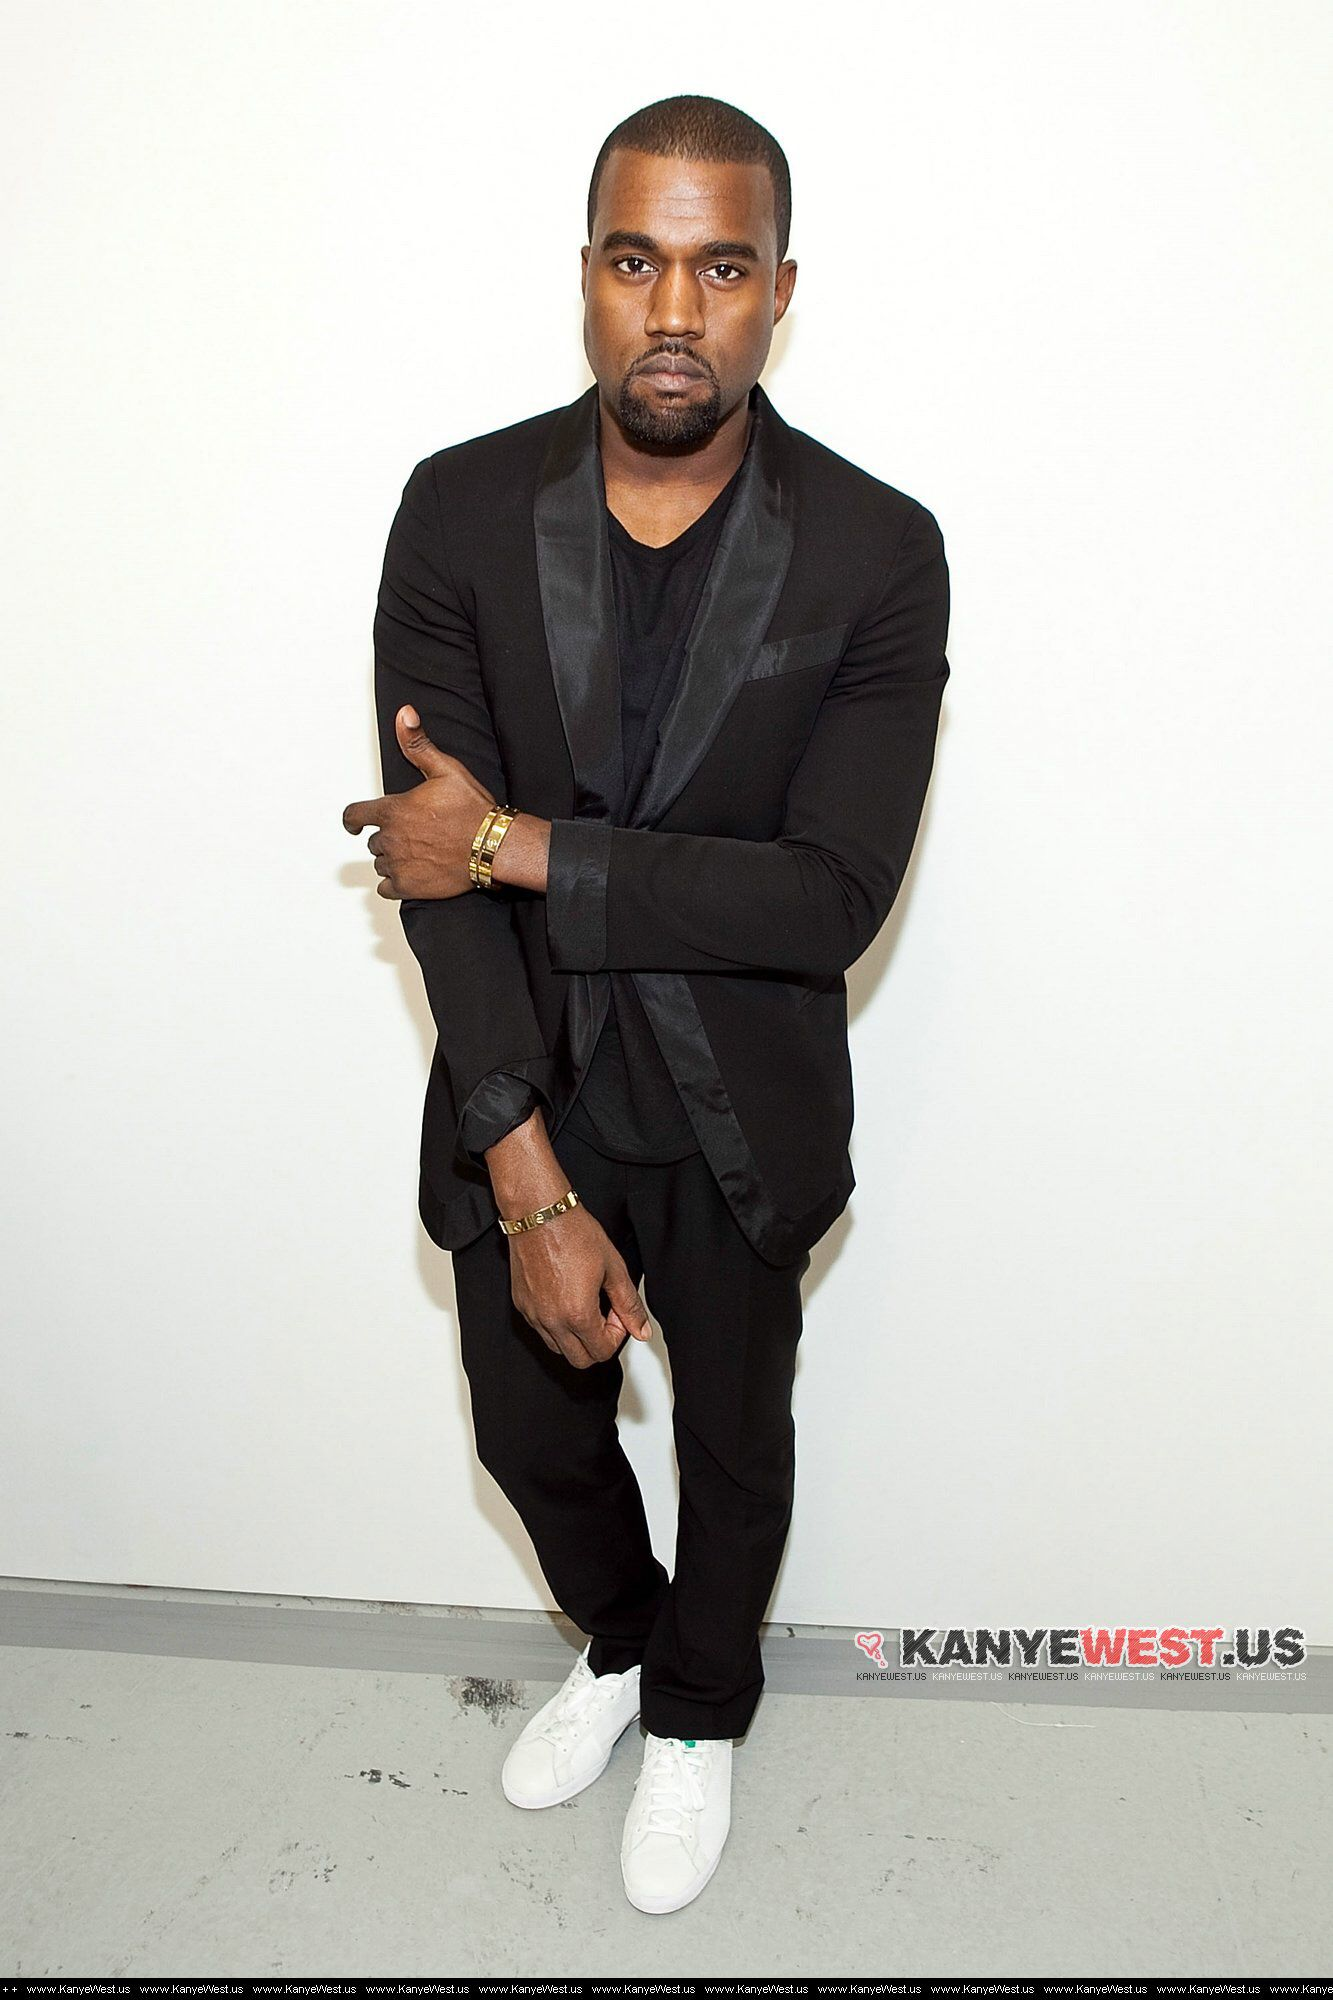 Find This Pin And More On Stan Smith :) Kanye West Cartier Love